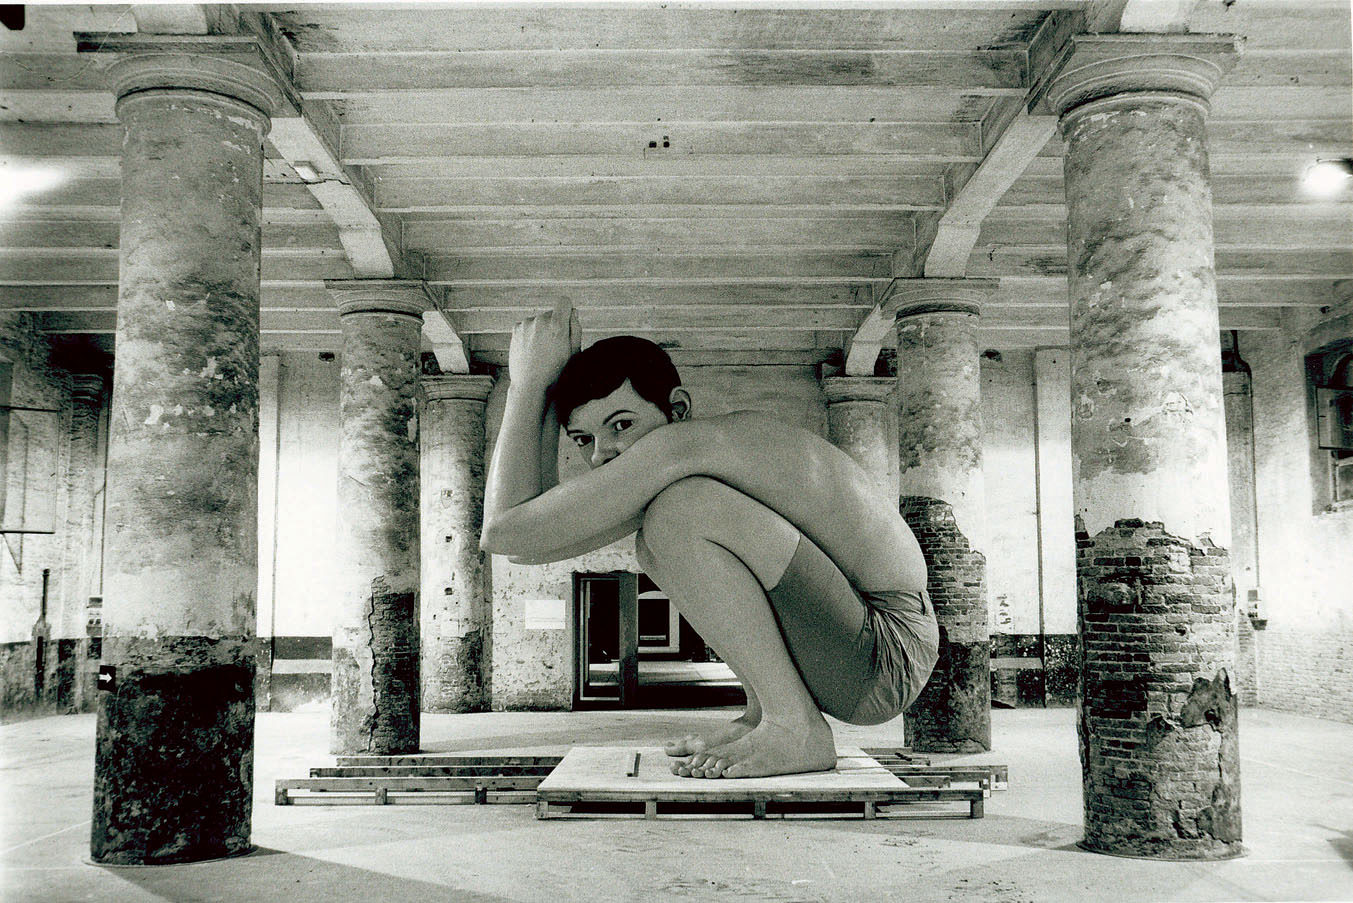 Photograph of a massive realistic sculpture of a young boy crouching down.